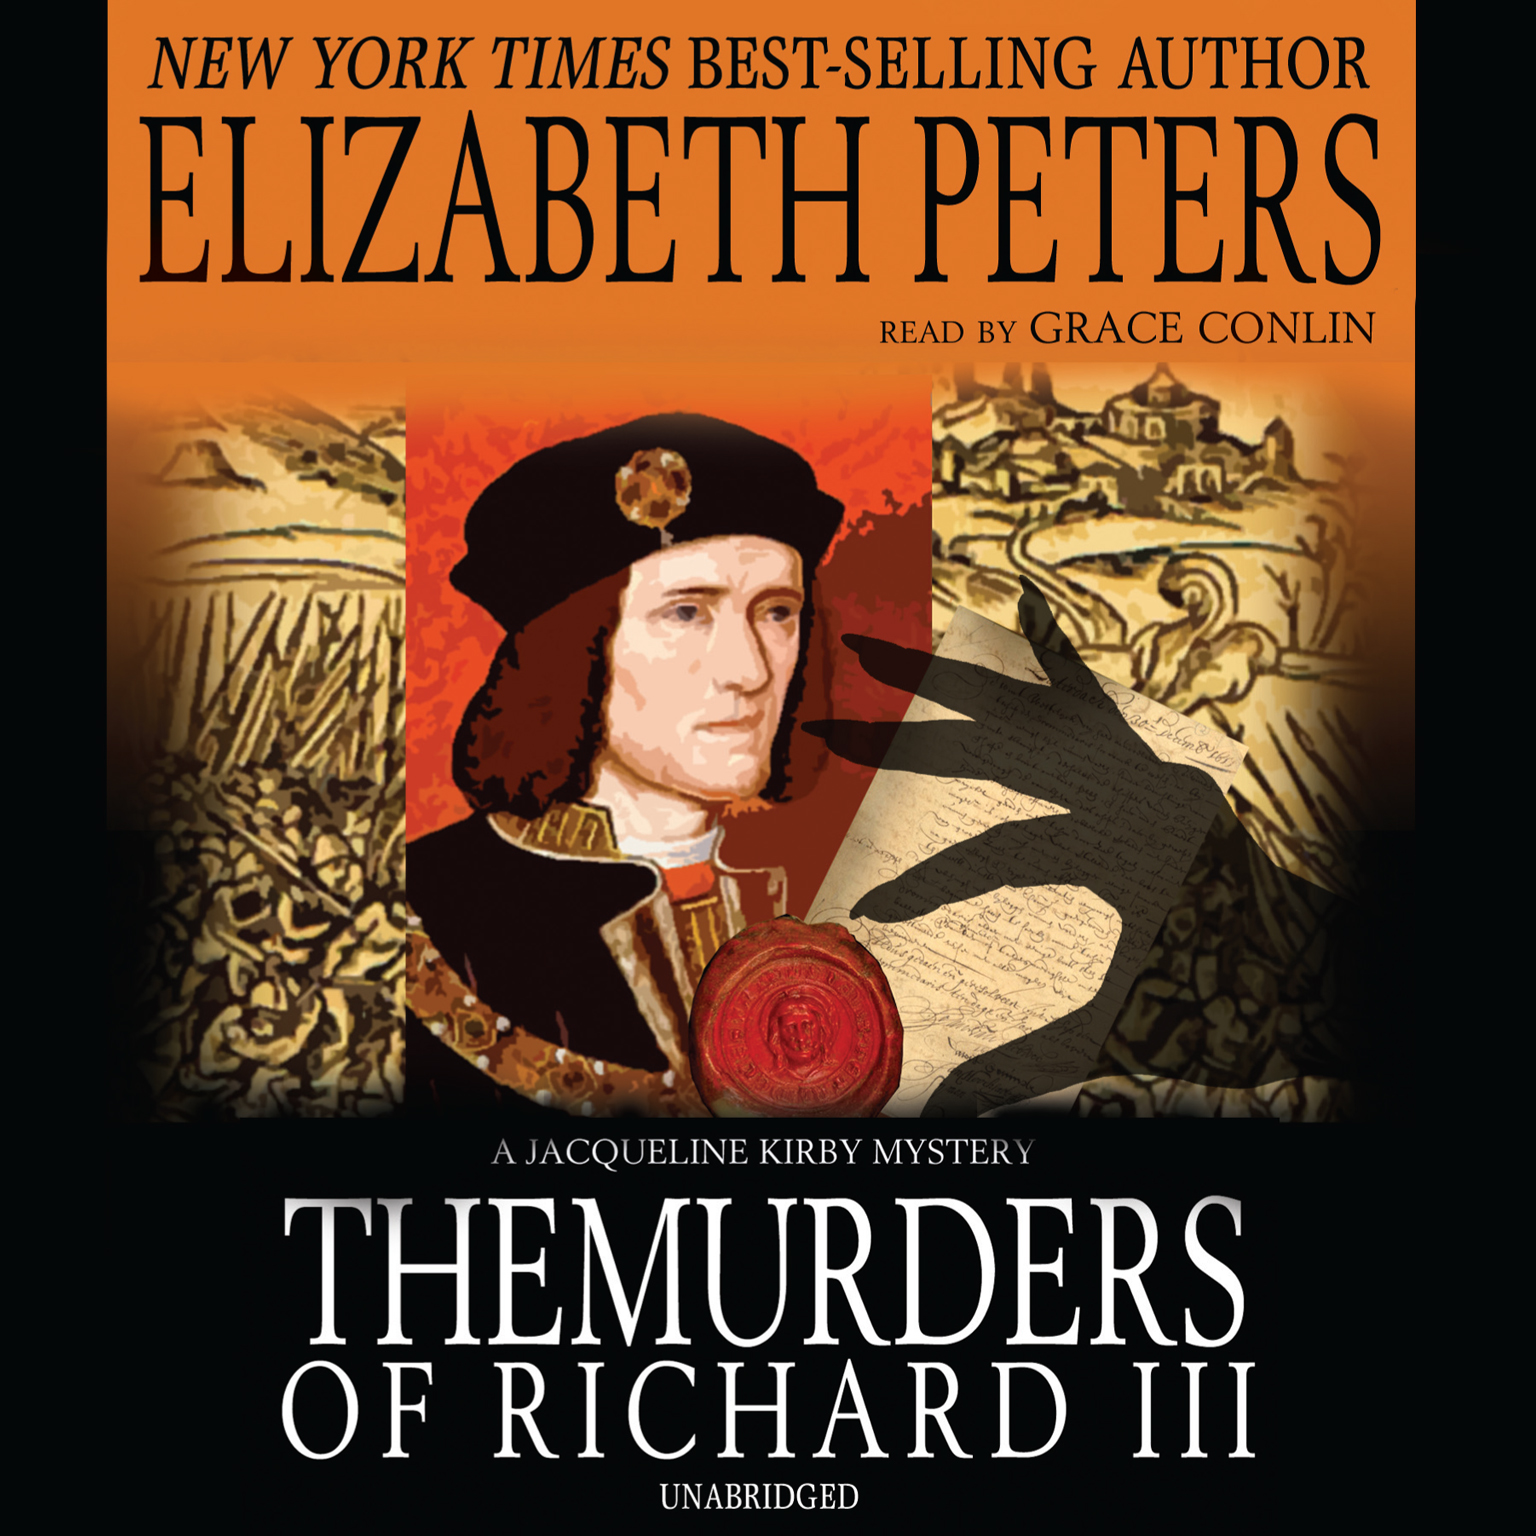 Printable The Murders of Richard III Audiobook Cover Art